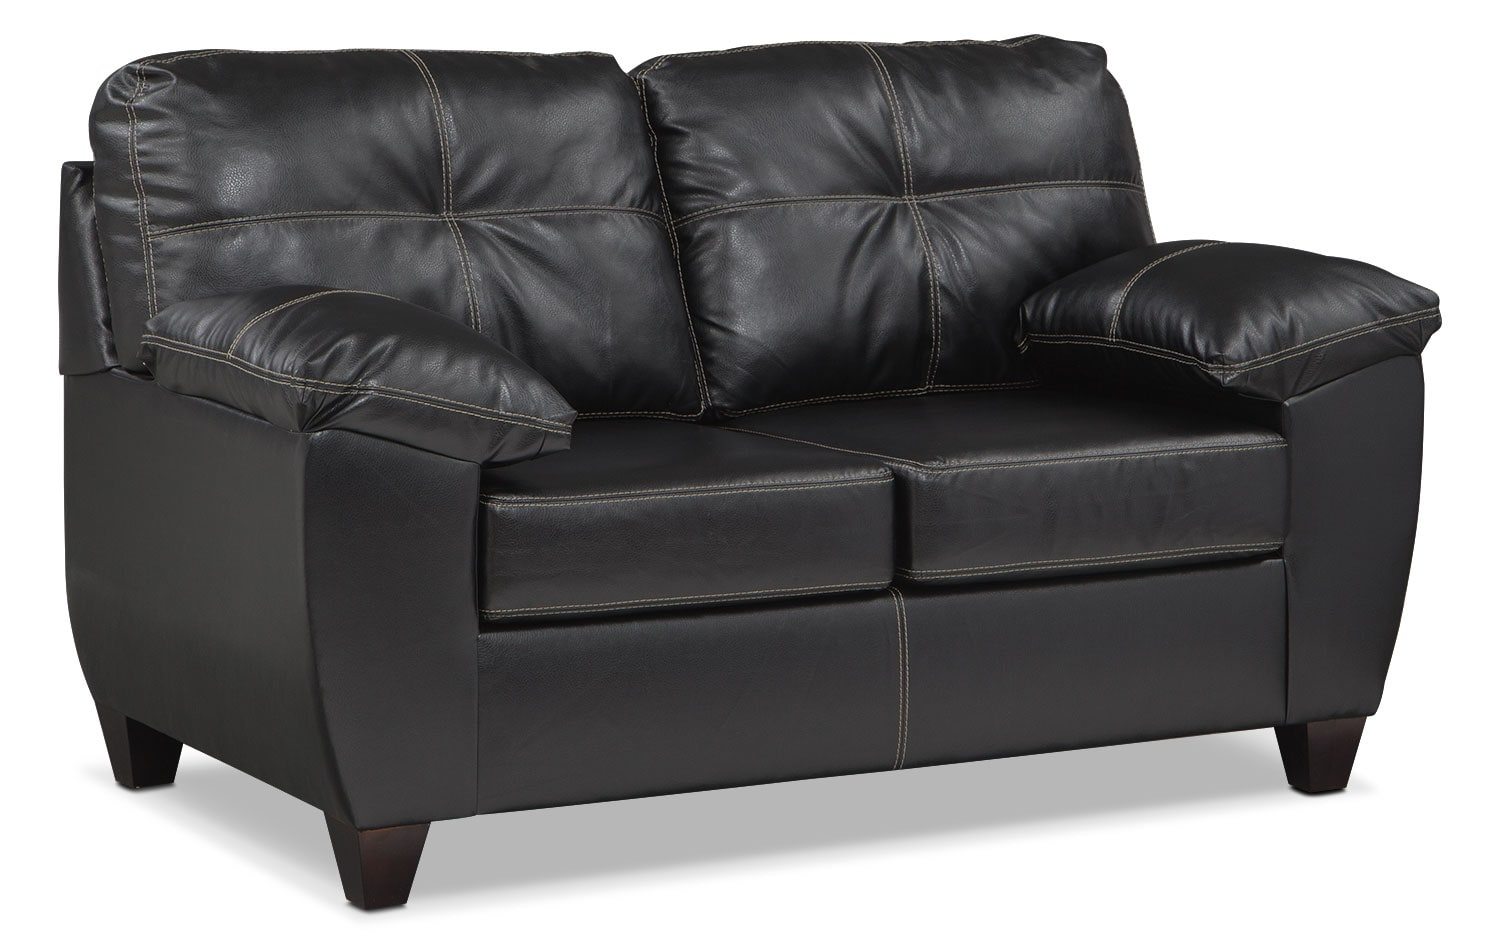 Living Room Furniture - Ricardo Loveseat